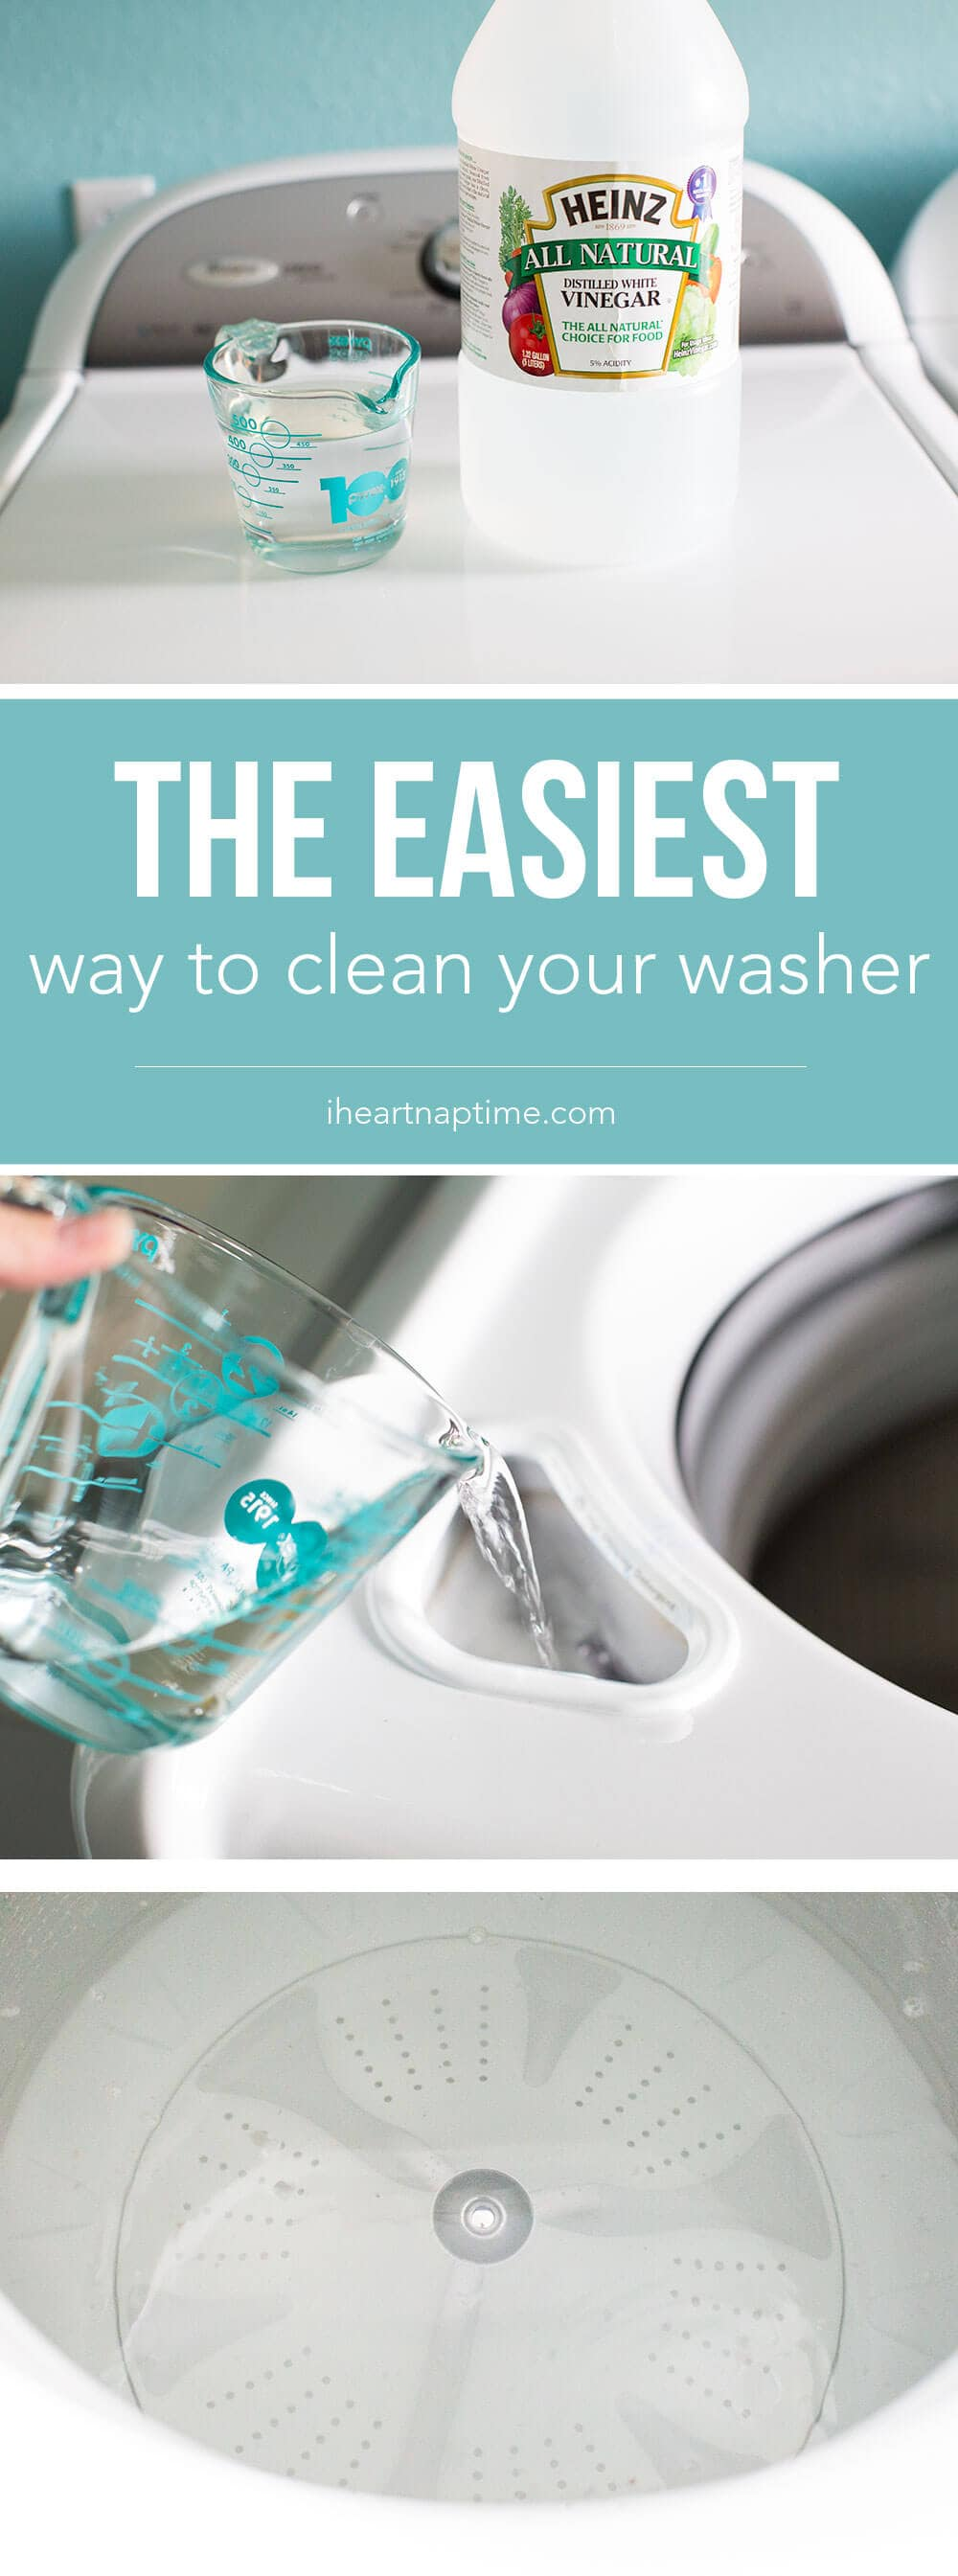 using vinegar to clean washer